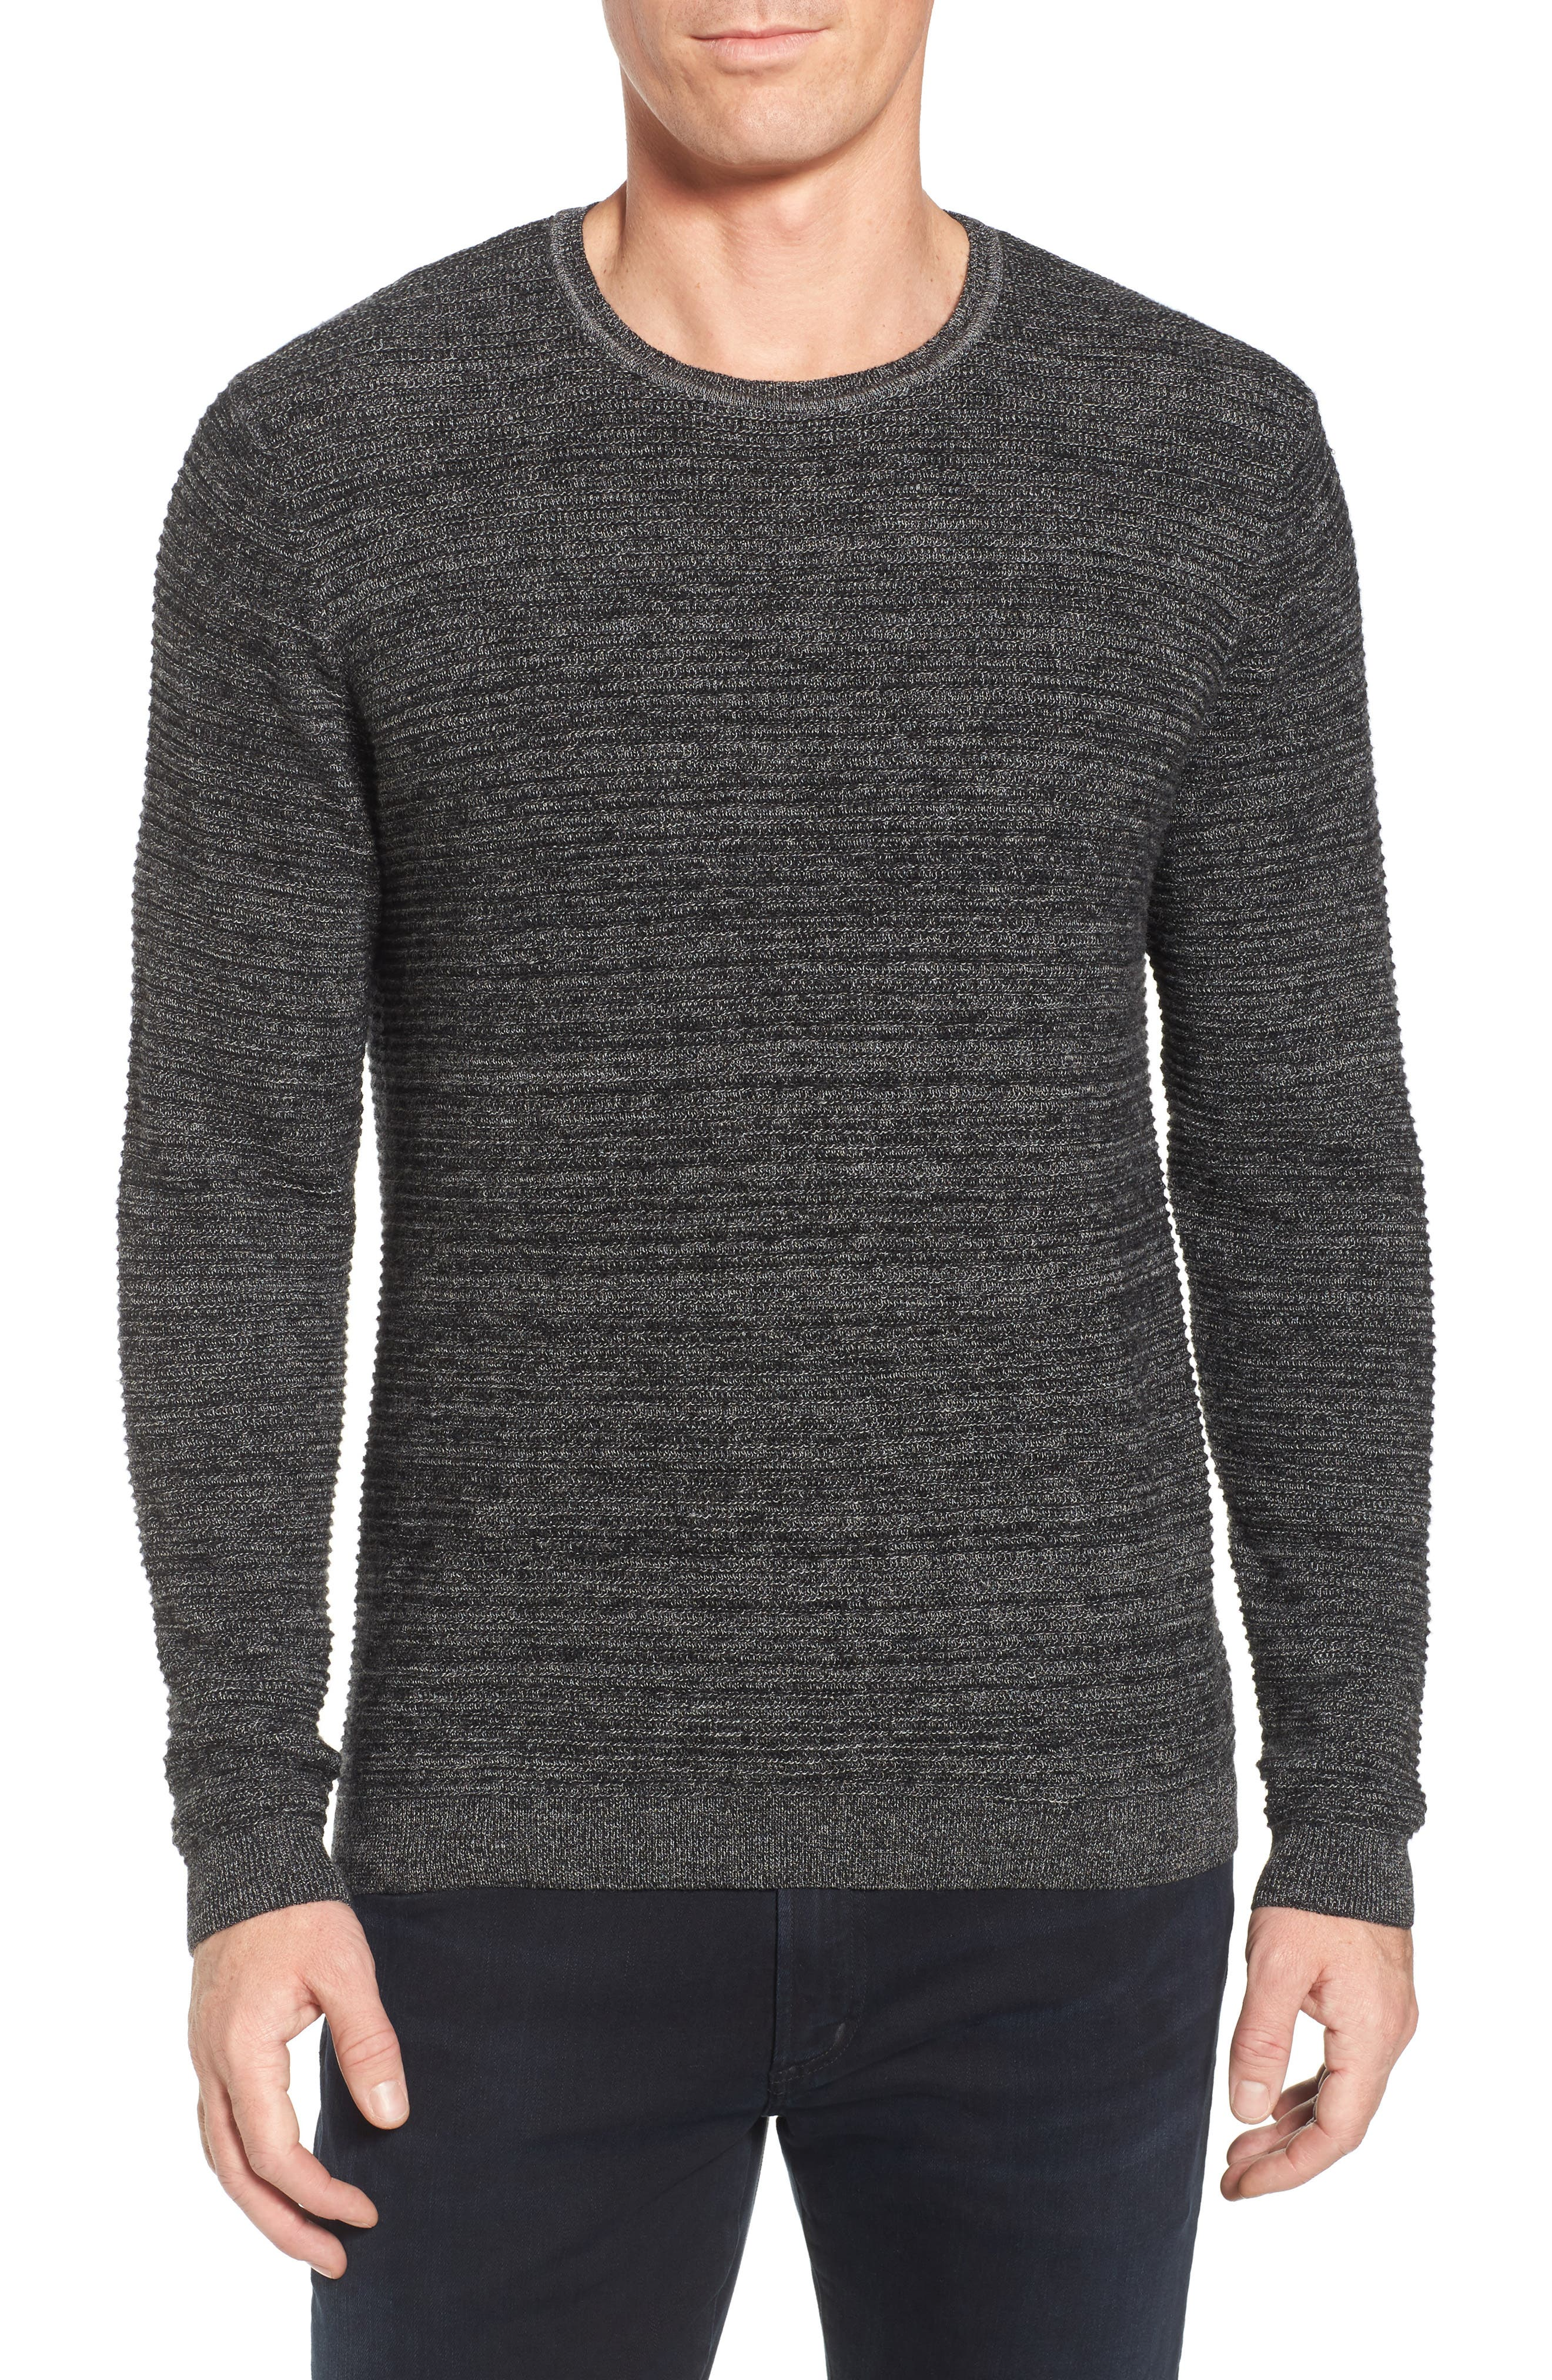 Ottoman Wool Blend Sweater,                             Main thumbnail 1, color,                             001